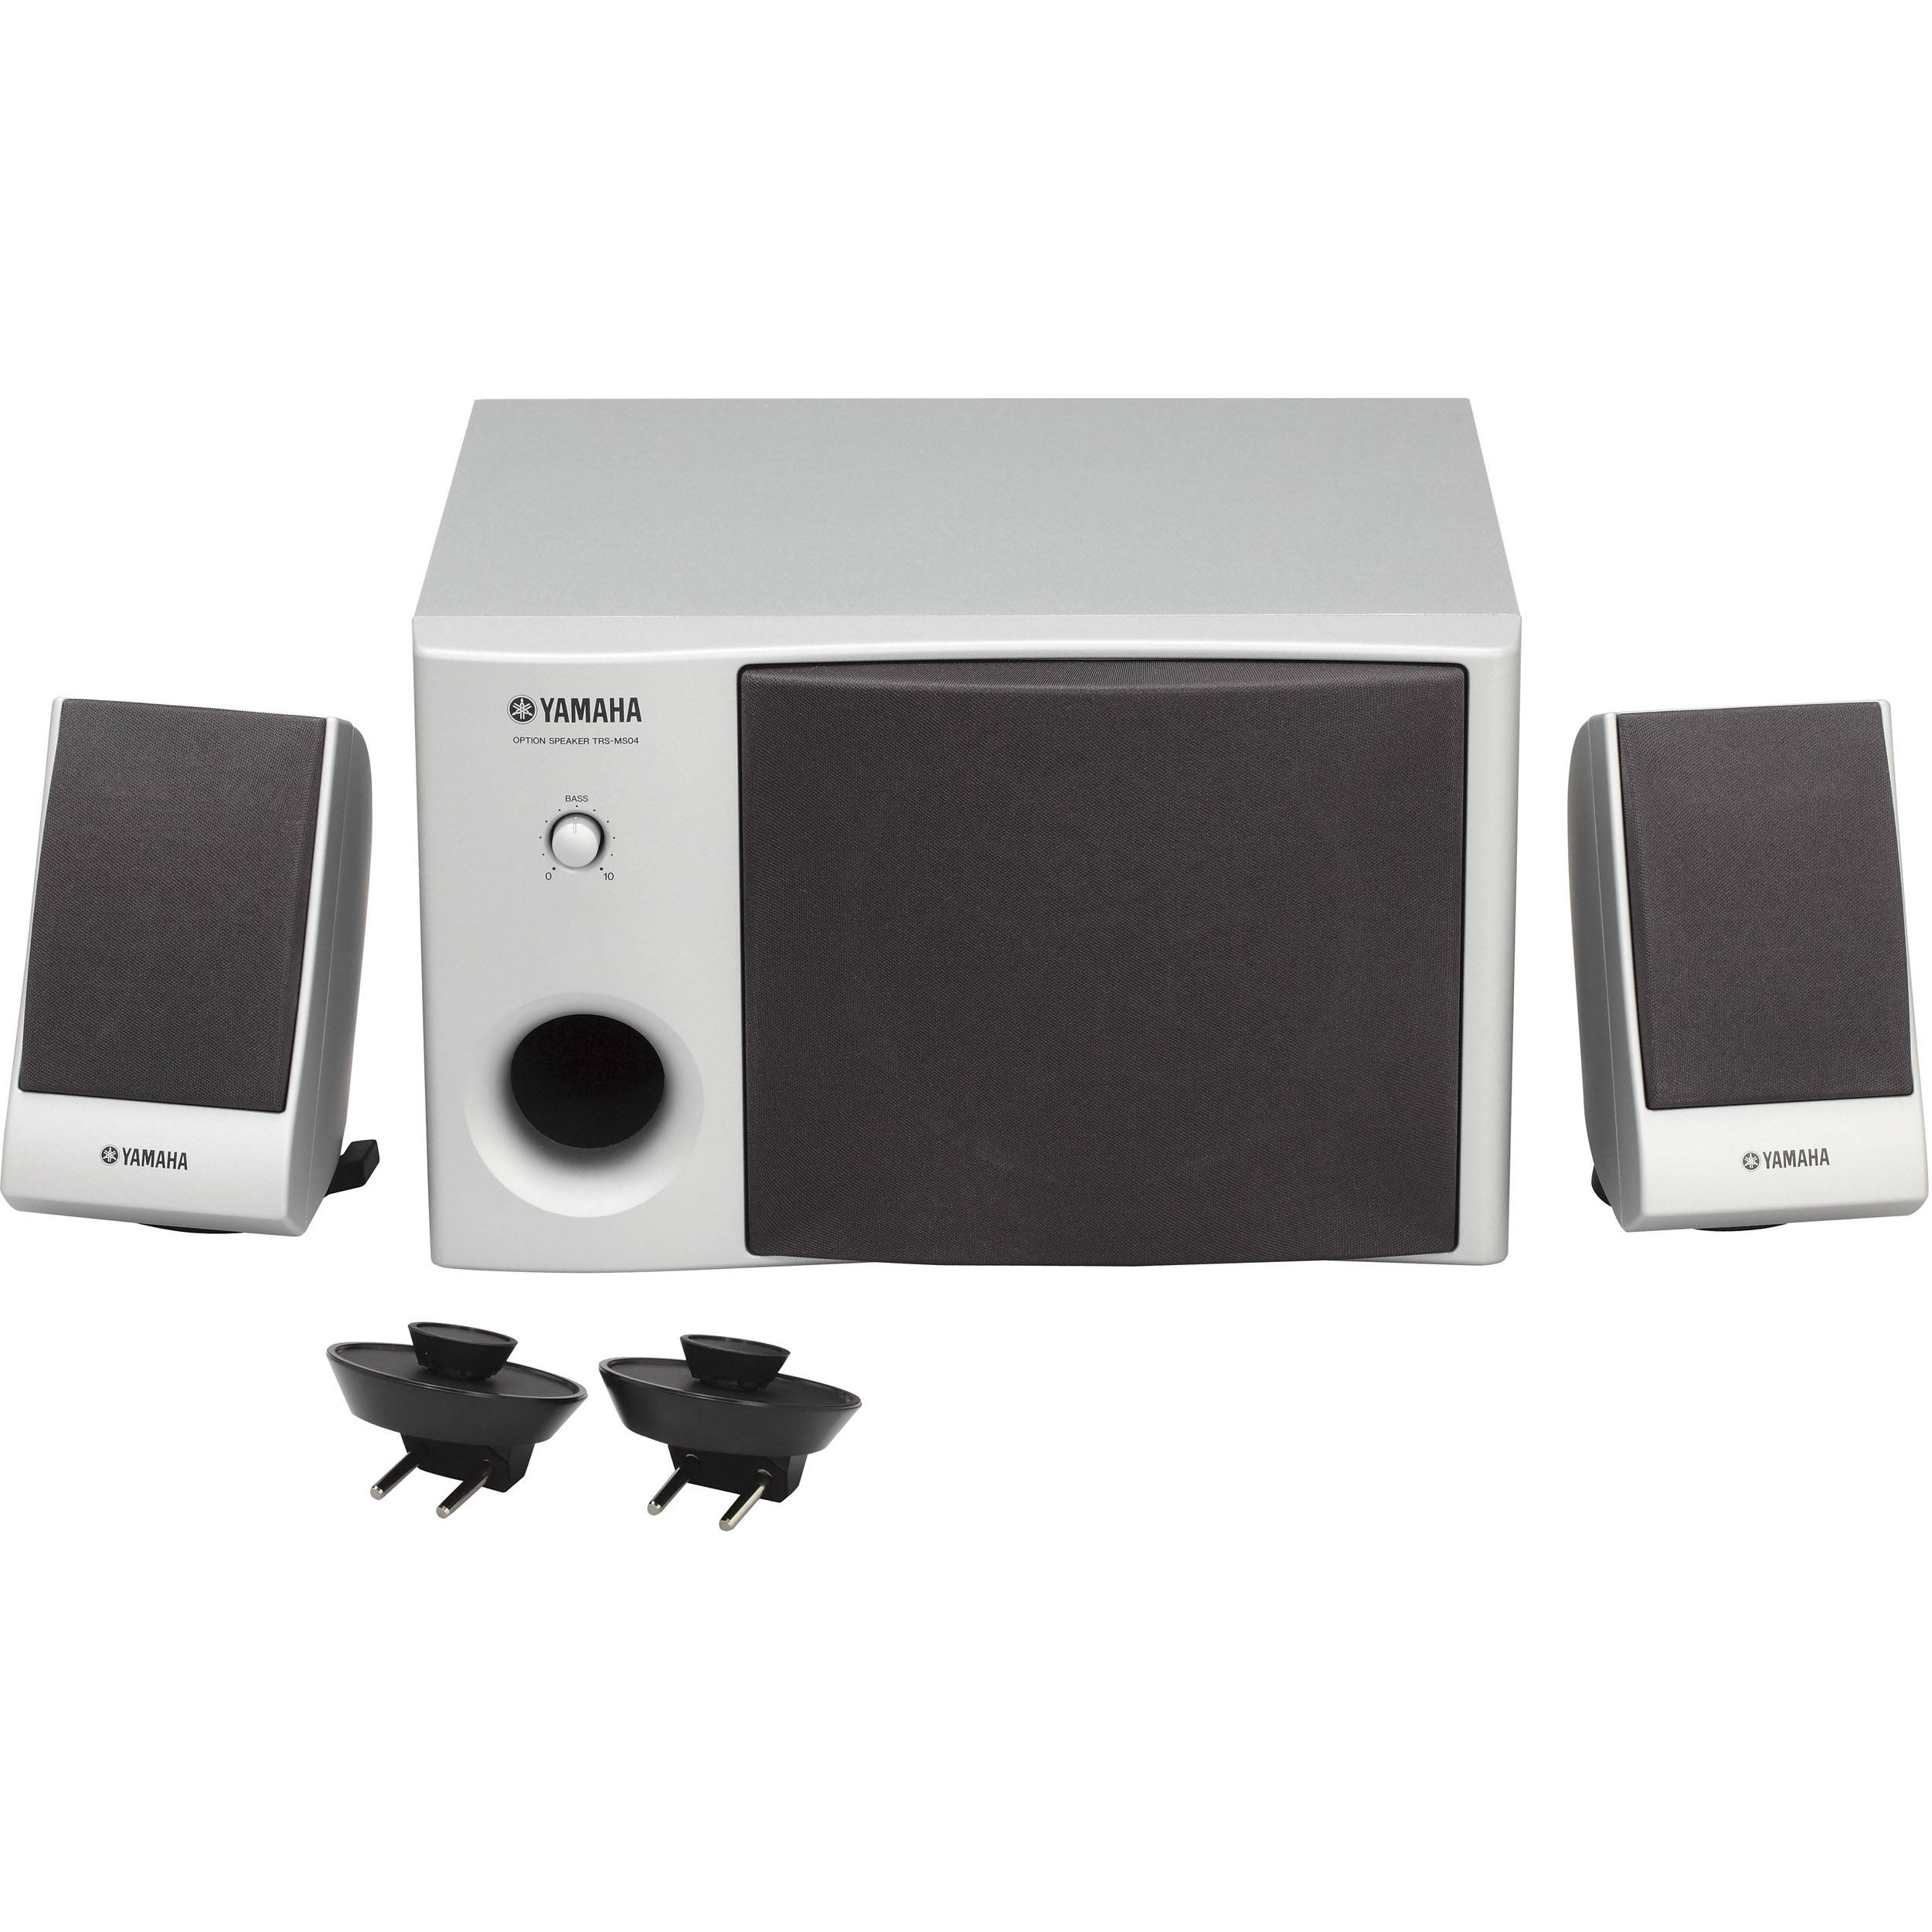 Yamaha trs ms04 speaker system trsms04 b h photo video for Yamaha speakers system